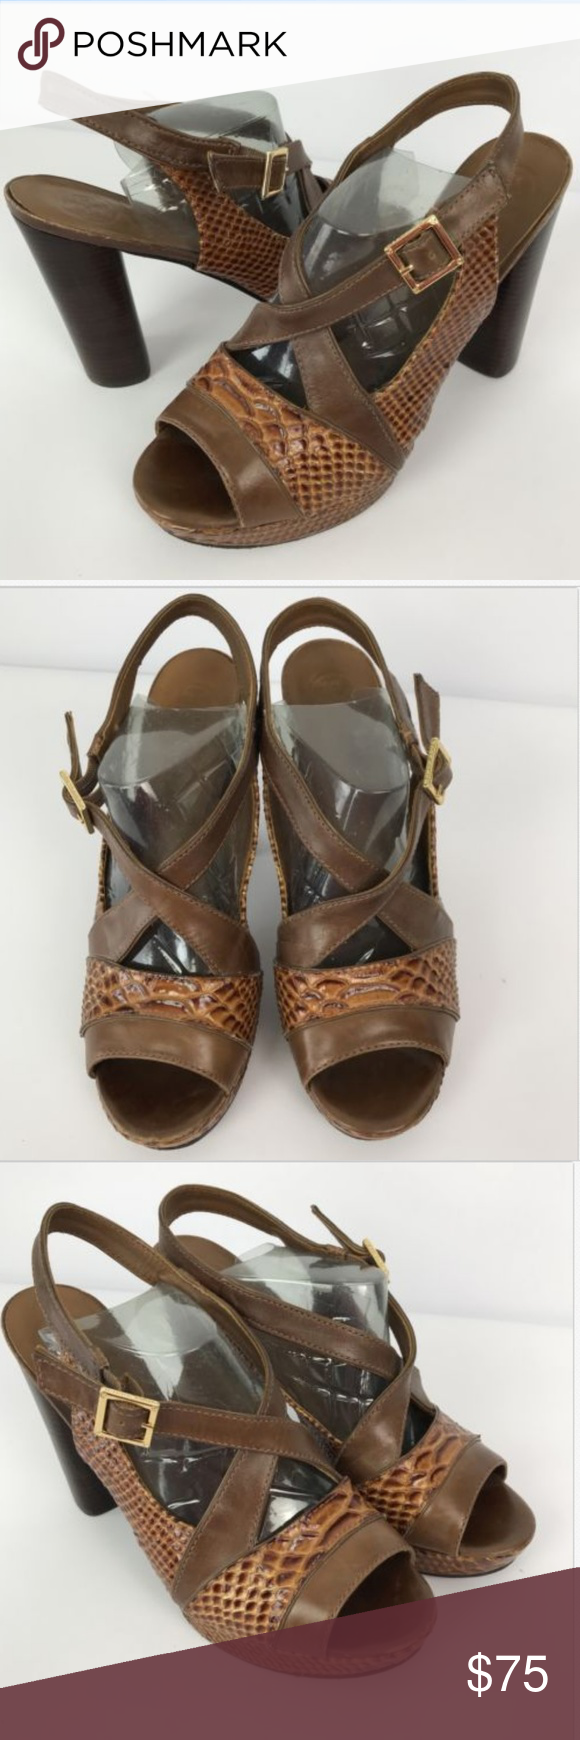 a5dbe6a6f6f2 Tory Burch Leather Sandals TORY BURCH Women Sandals Sz 10 Brown Leather  Faux Snake Skin High Heel Peep Toe Size 10 Please see all photos for  overall ...